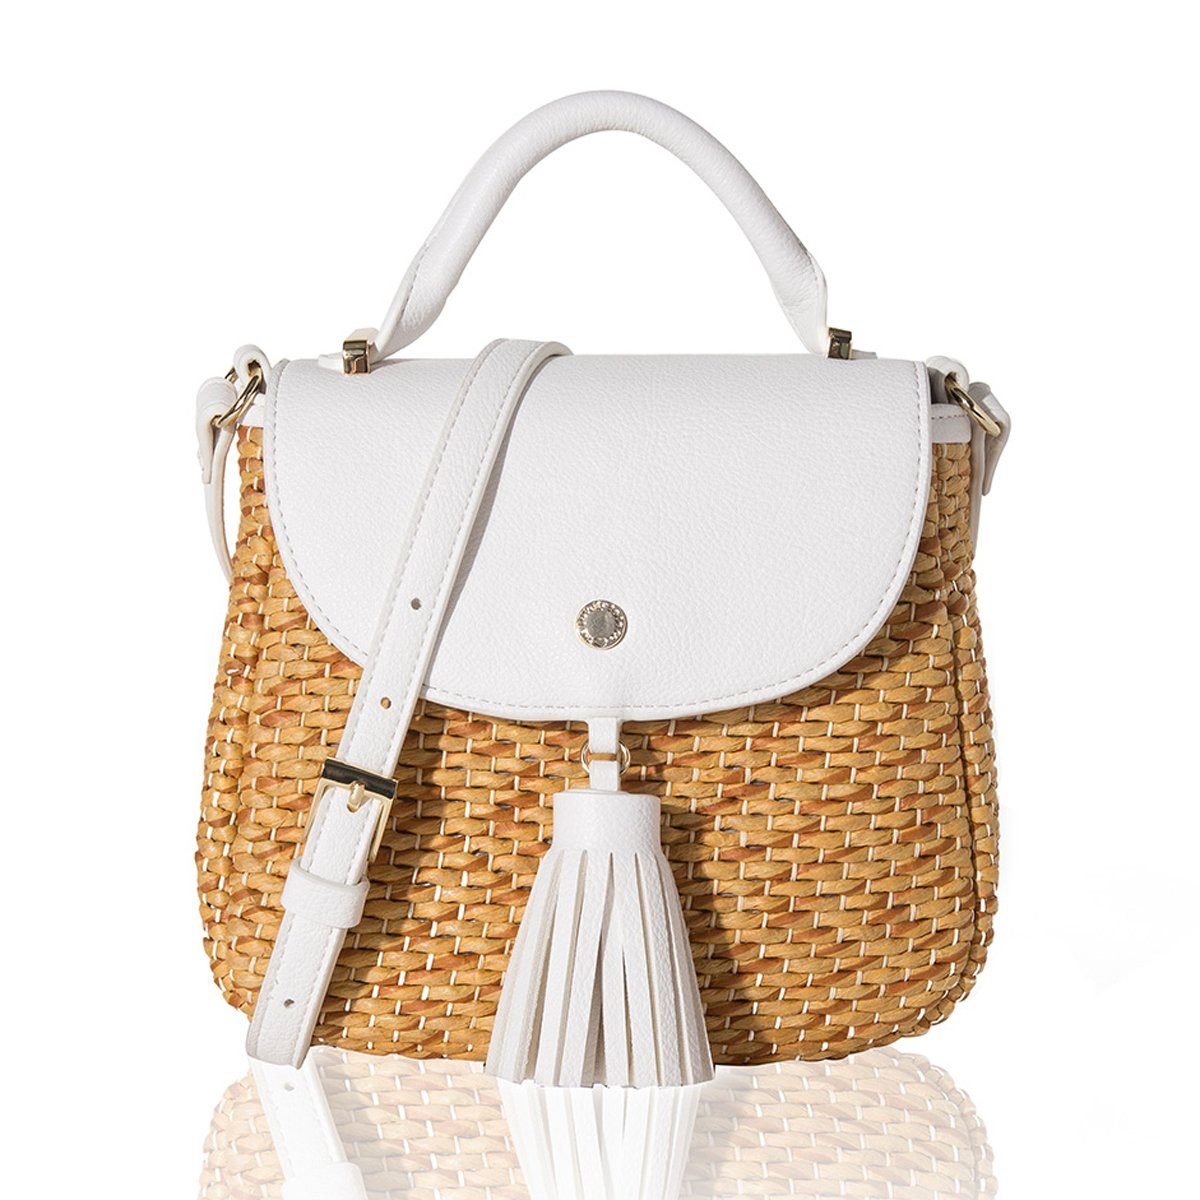 The Lovely Tote Co. Women's Straw Crossbody Bag Woven Cross Body Bag Shoulder Top Handle Satchel, Ivory